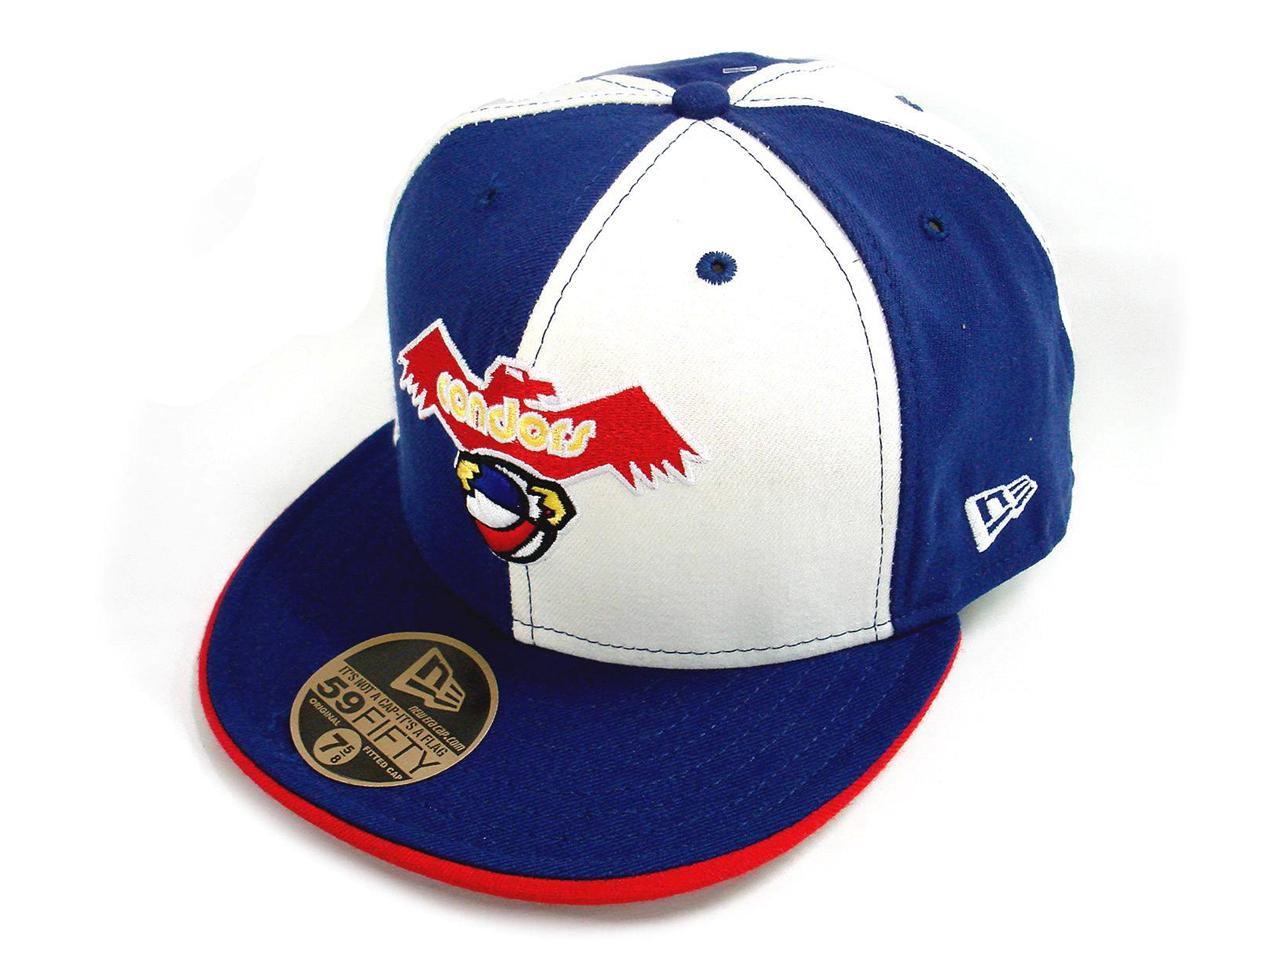 Authentic-New-Era-5950-59Fifty-Wool-Fitted-ABA-Baseball-Cap-Pittsburgh-Condors